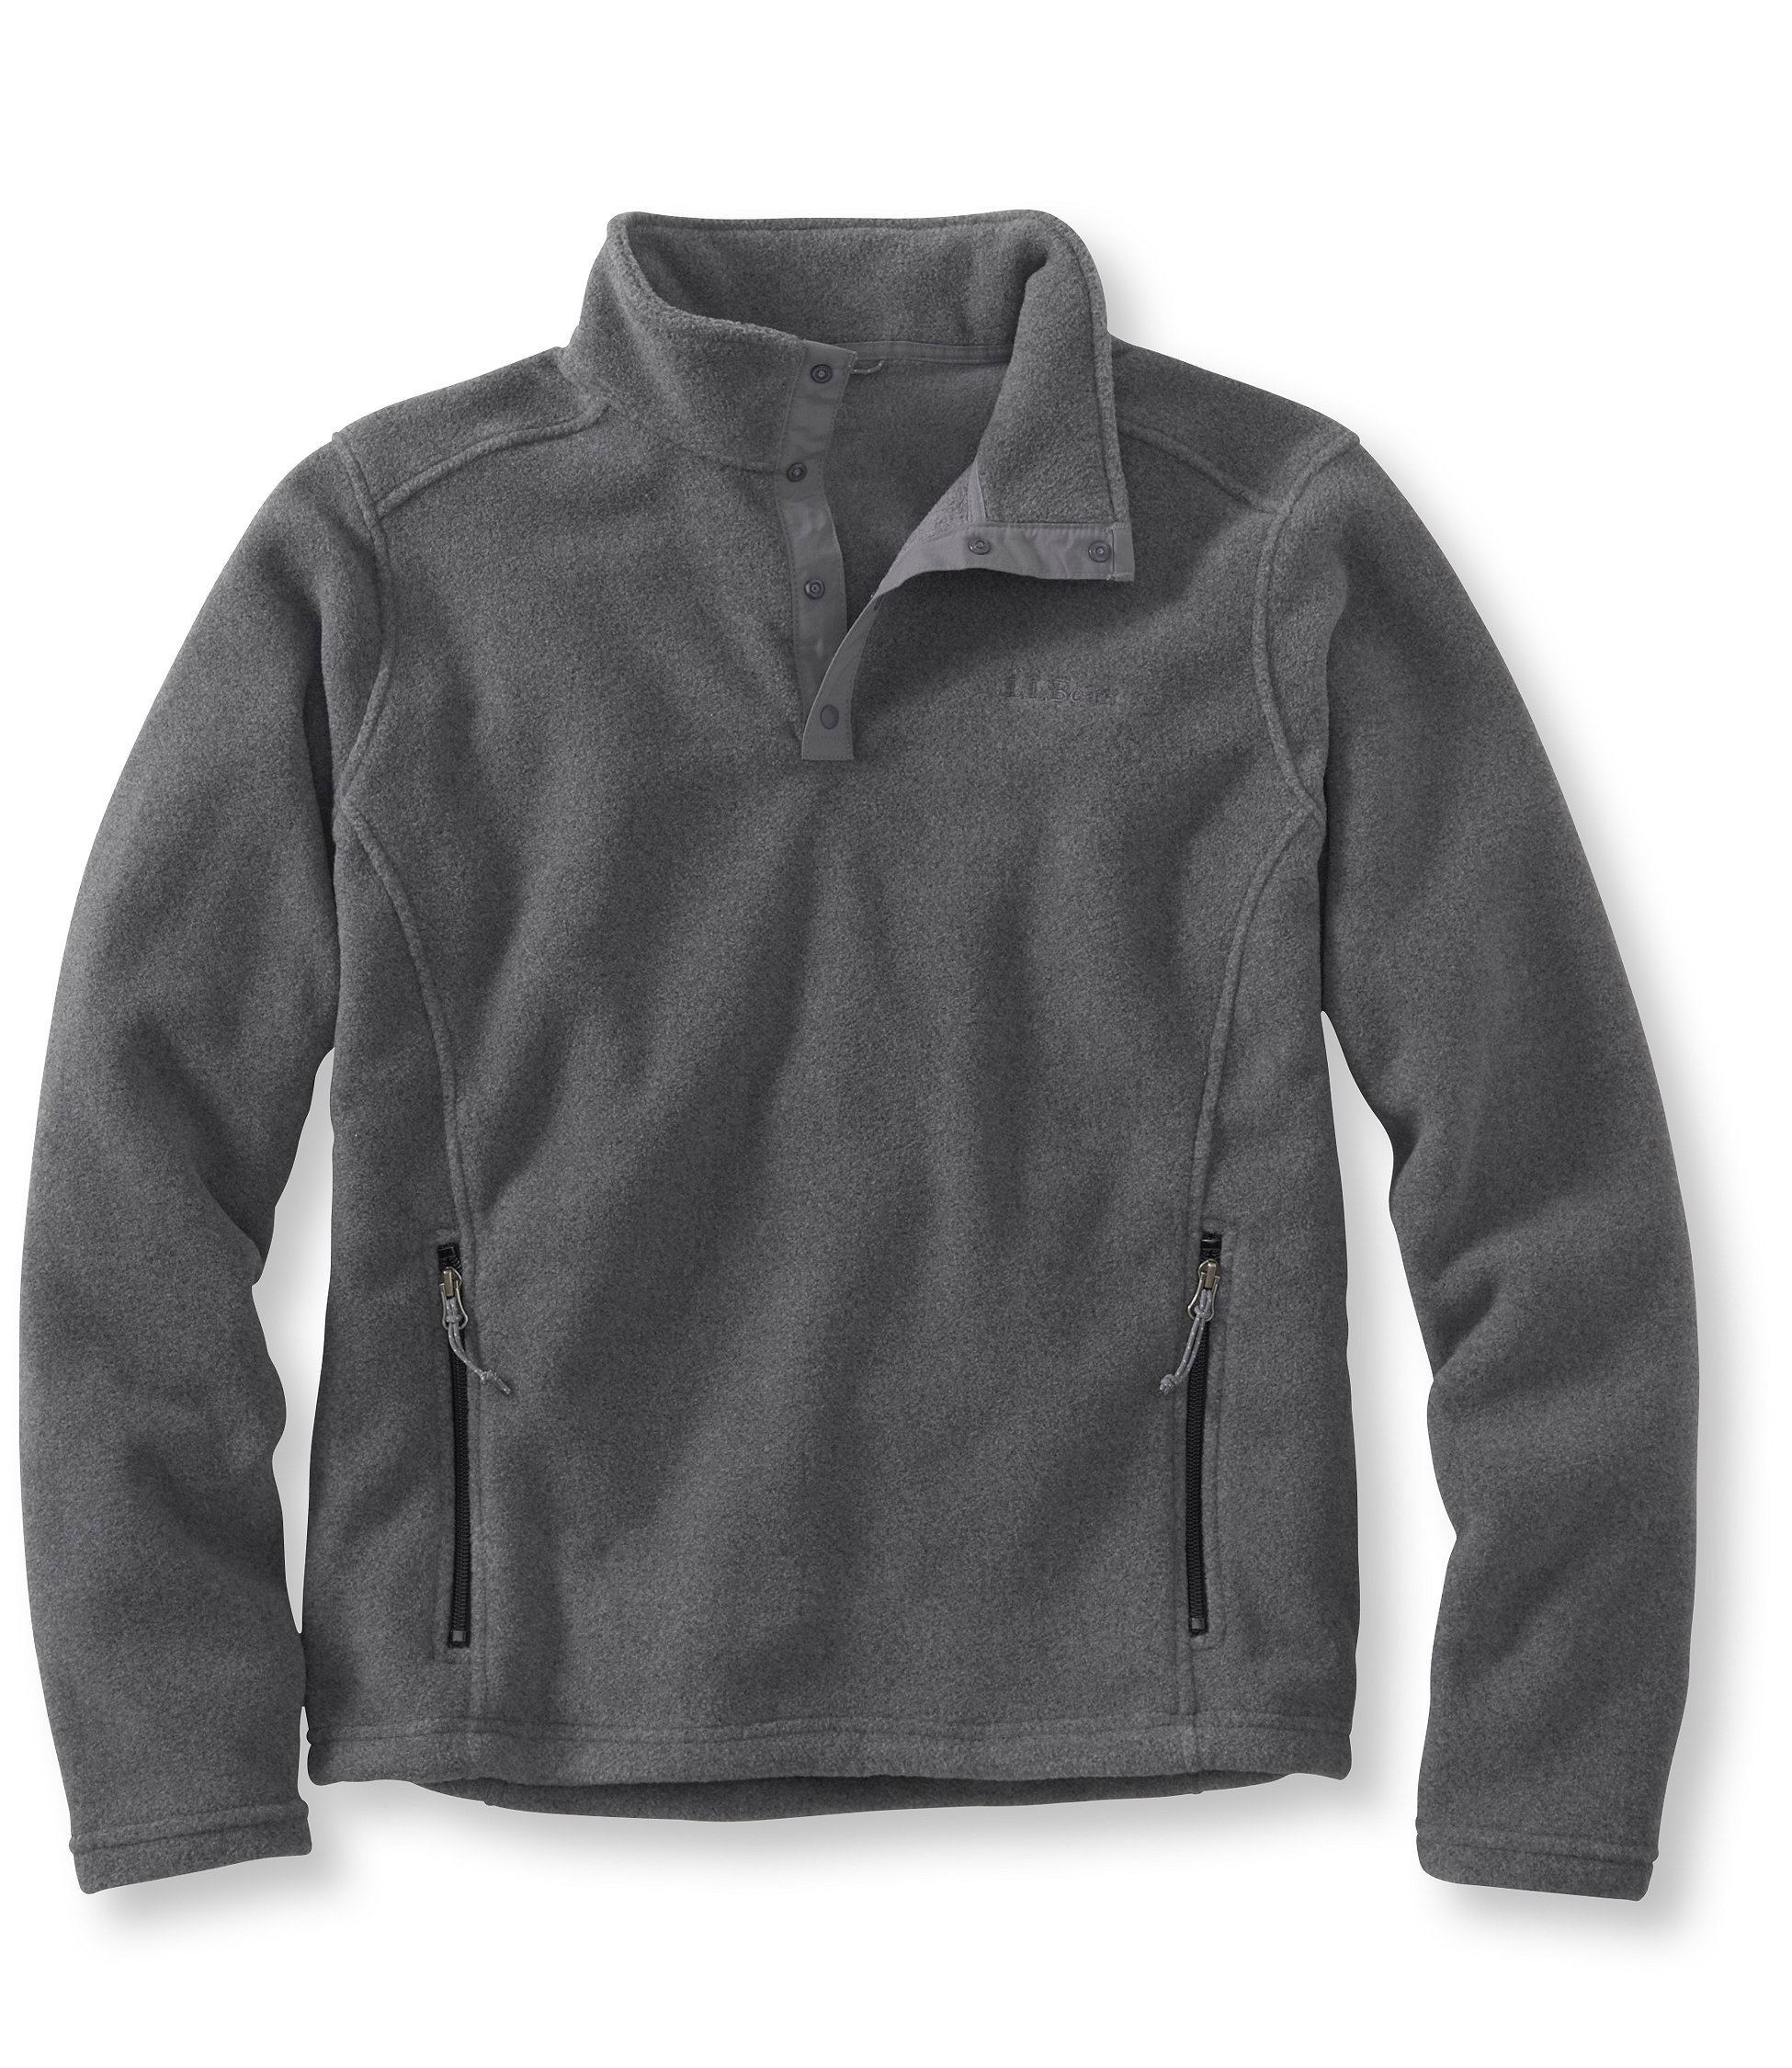 L.L.Bean Trail Model Fleece Pullover